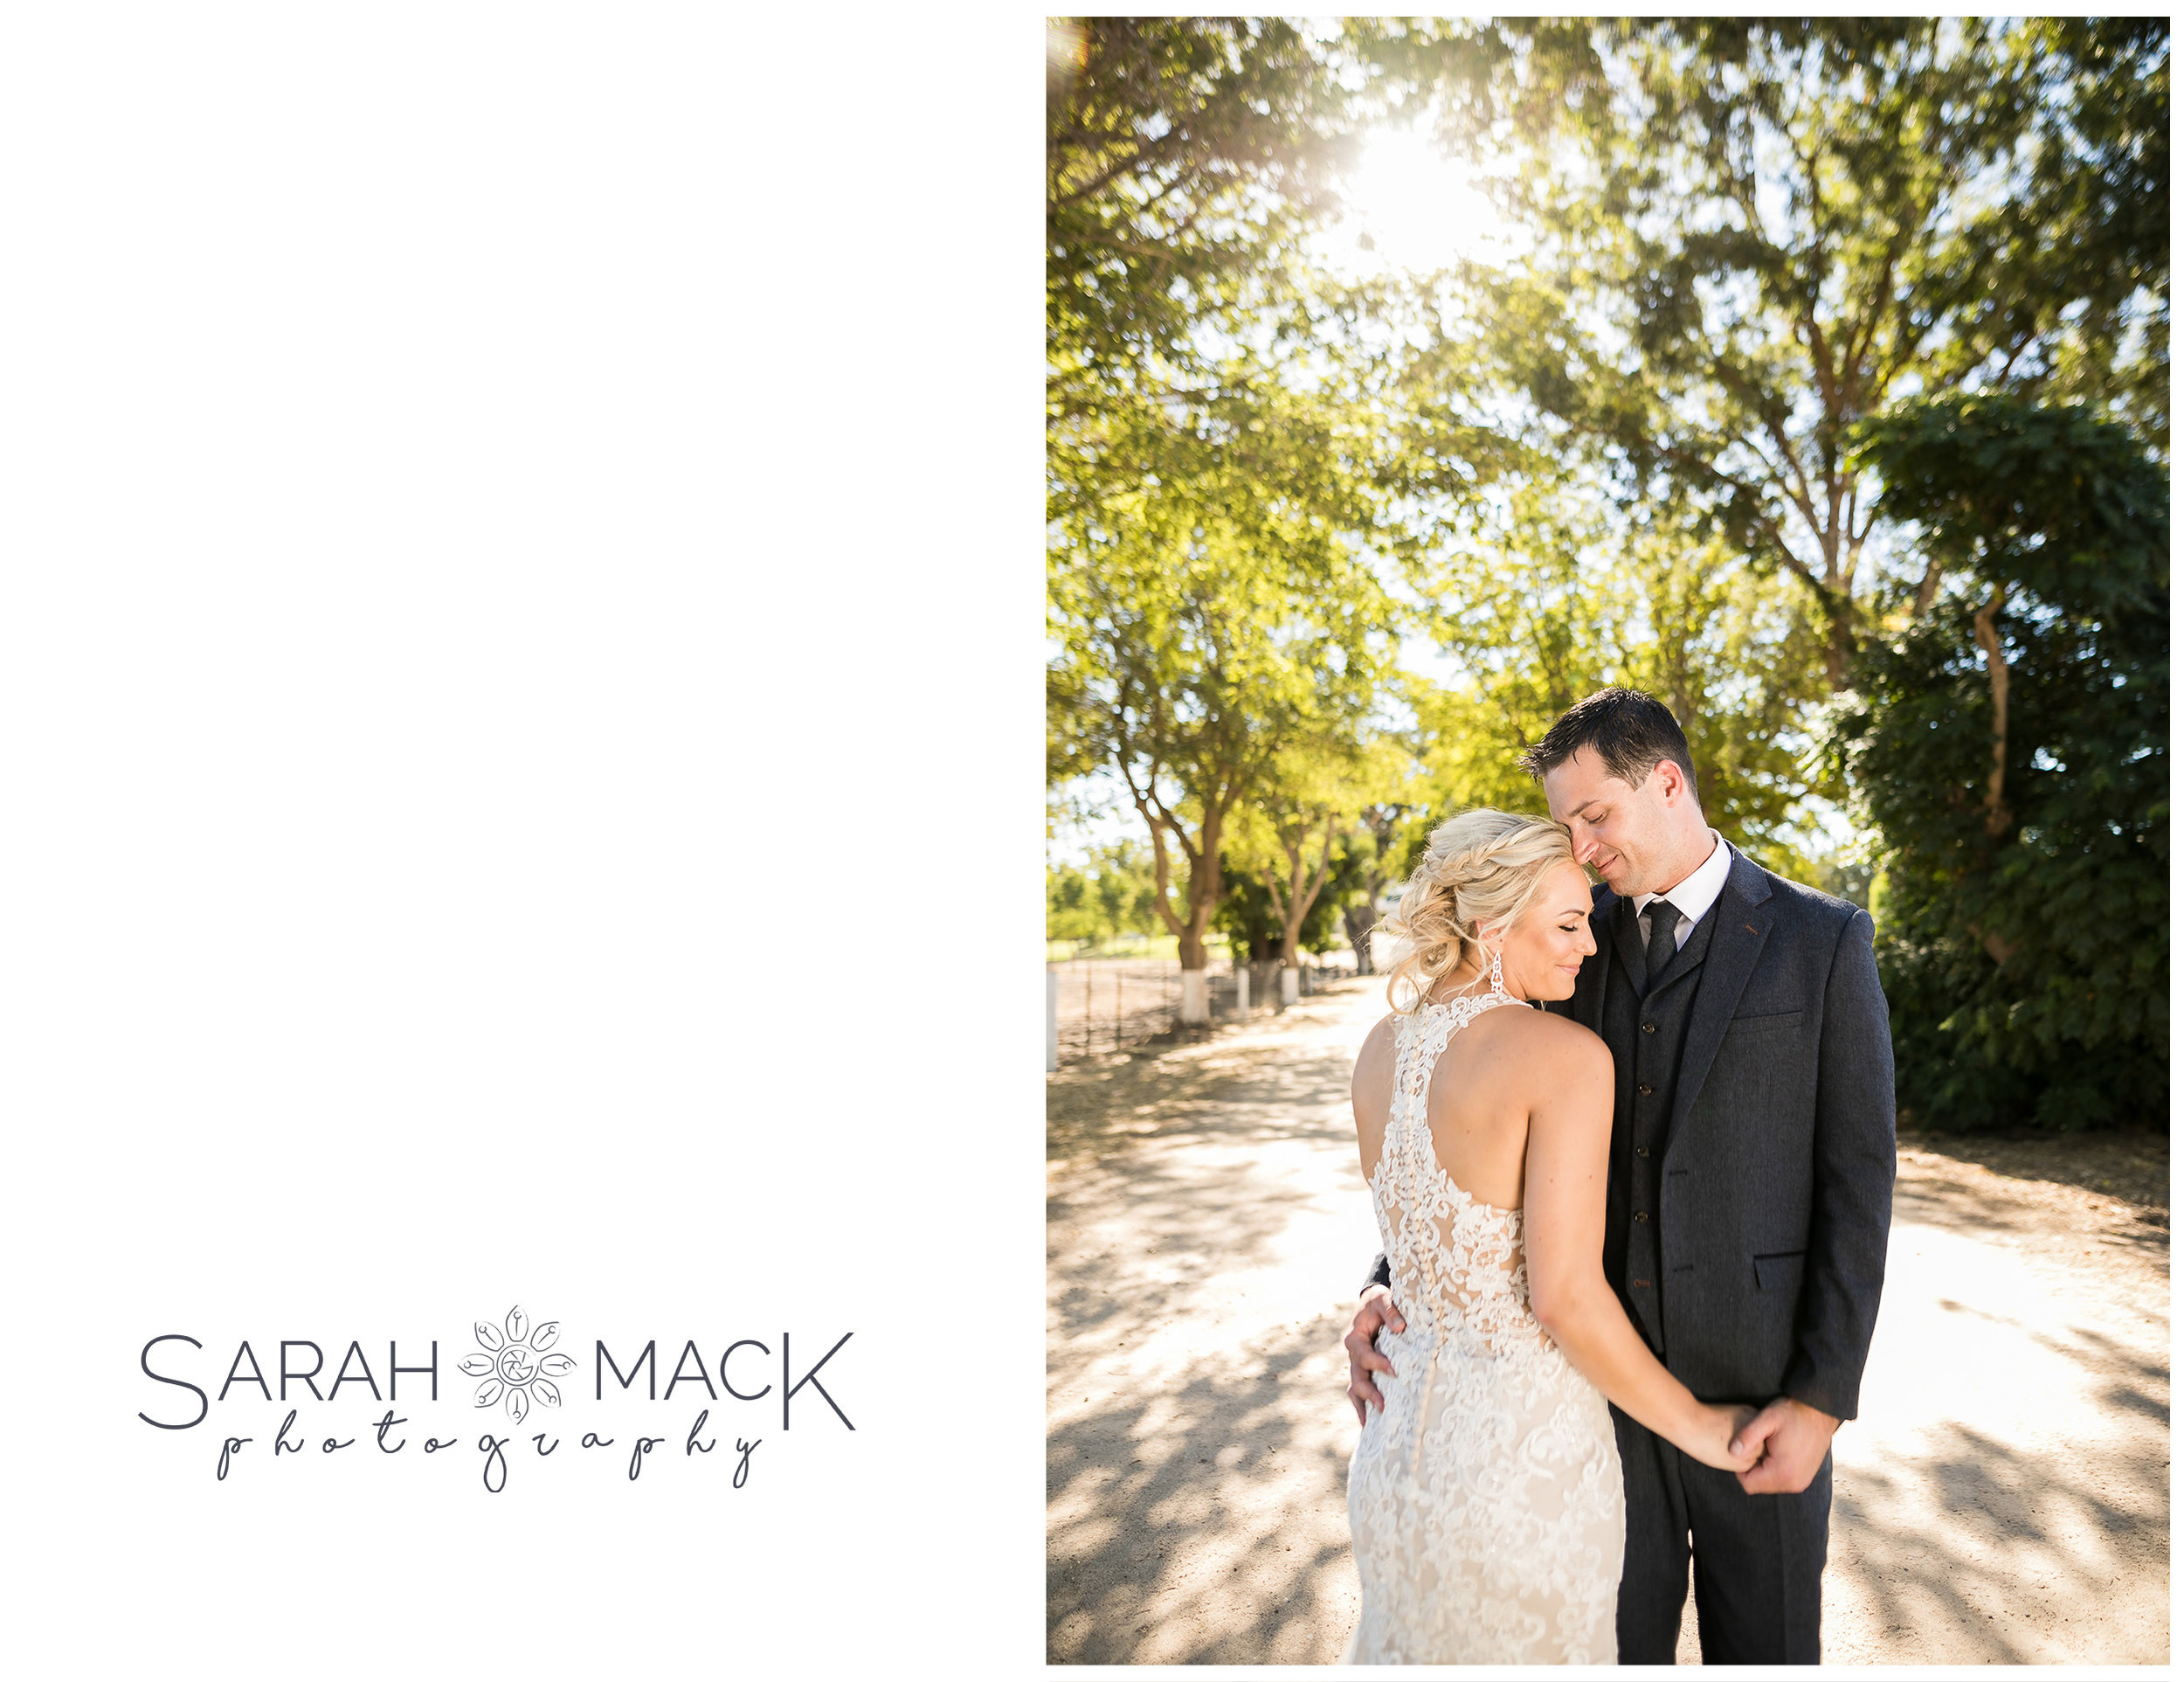 MA-Chandler-Ranch-Paso-Robles-Wedding-Photography-39.jpg